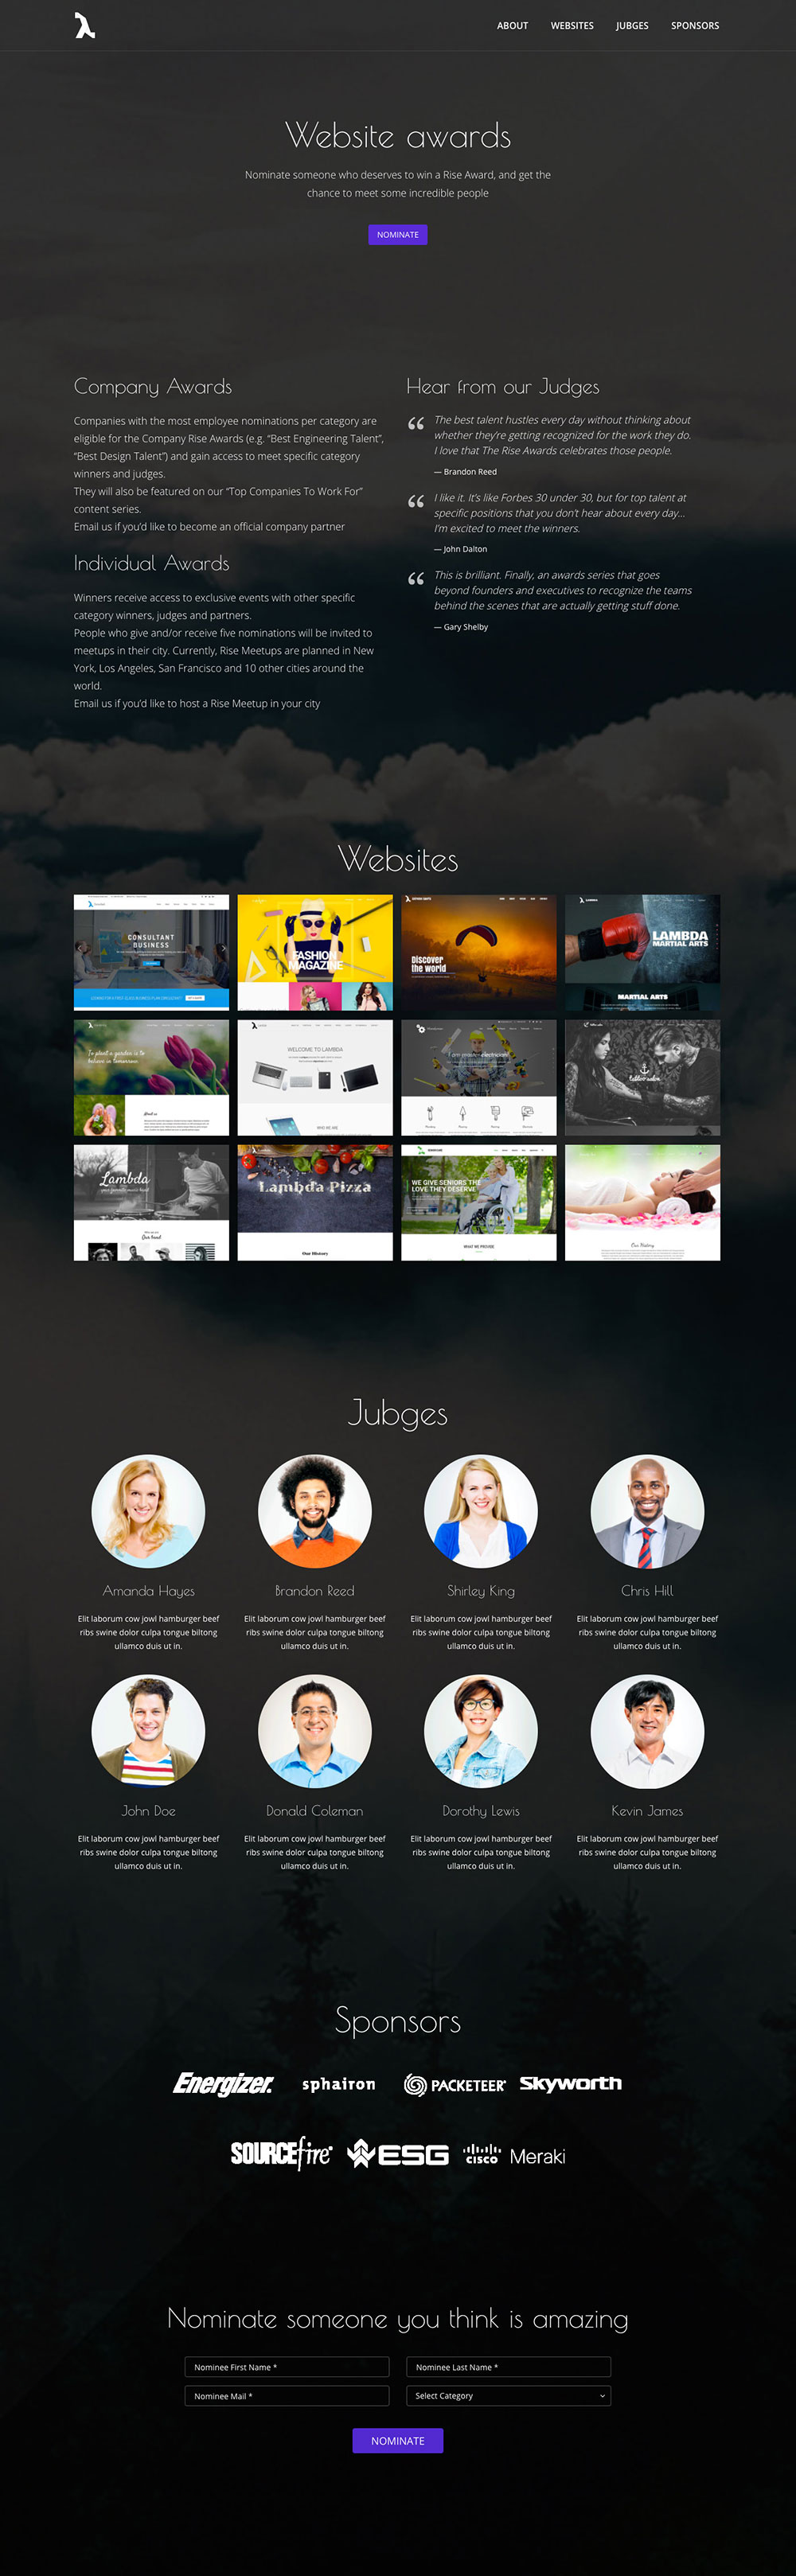 Website Awards for WordPress